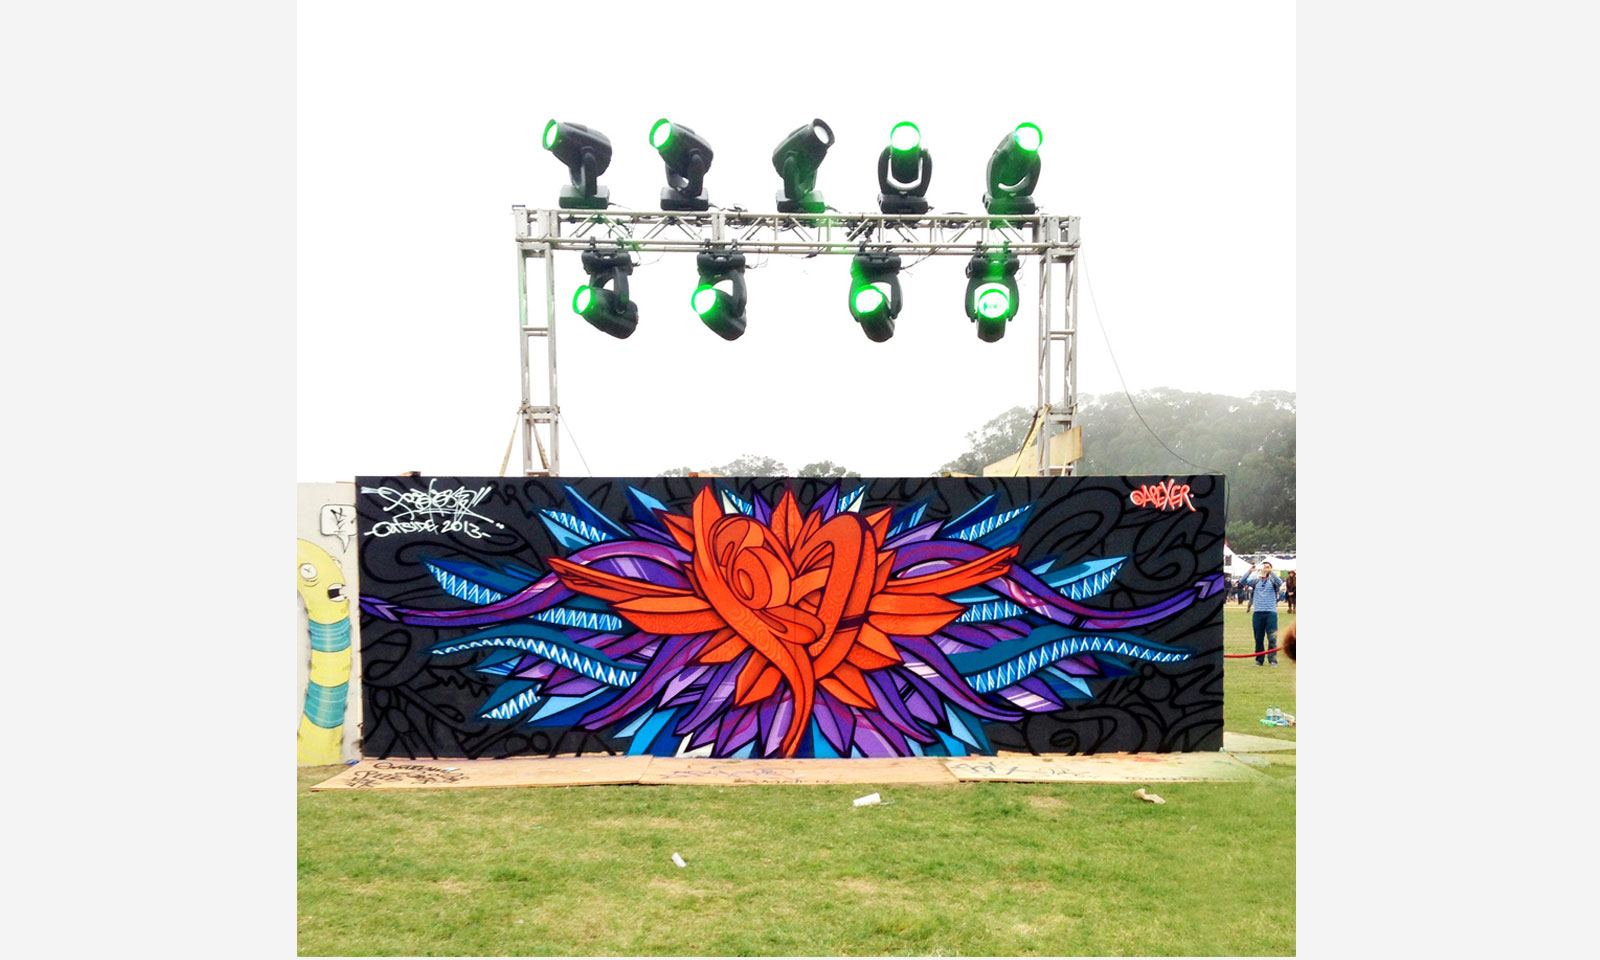 Mural created by Apexer at Outsidelands Music Festival, San Francisco, 2013